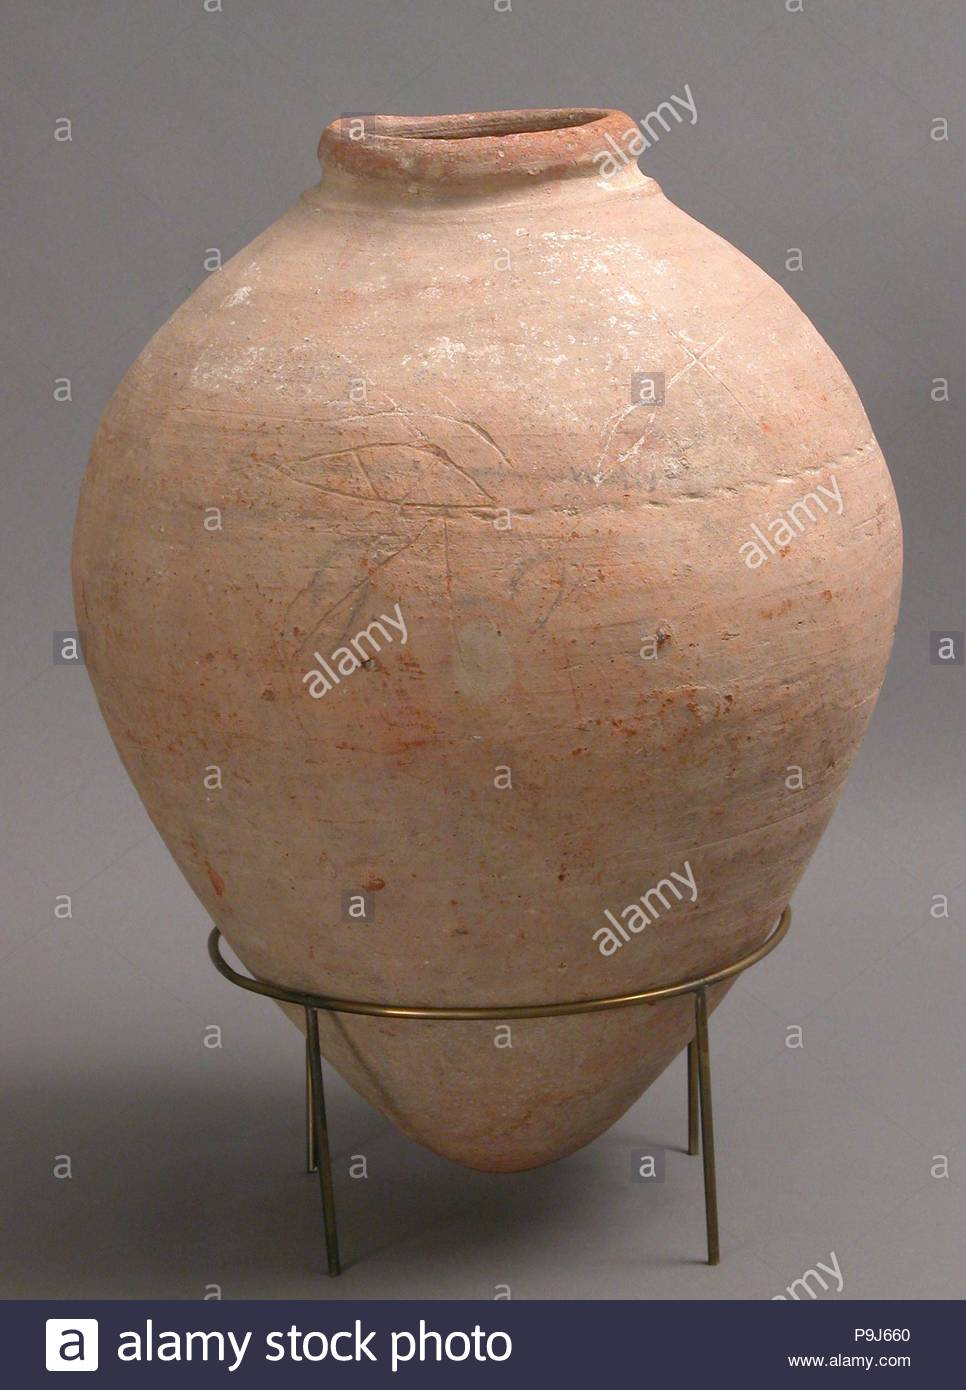 Jar, 4th–7th century, Made in Kharga Oasis, Byzantine Egypt, Coptic, Earthenware, with rope impression, 13 3/16 in. × 10 1/16 in. (33.5 × 25.6 cm), Ceramics. - Stock Image